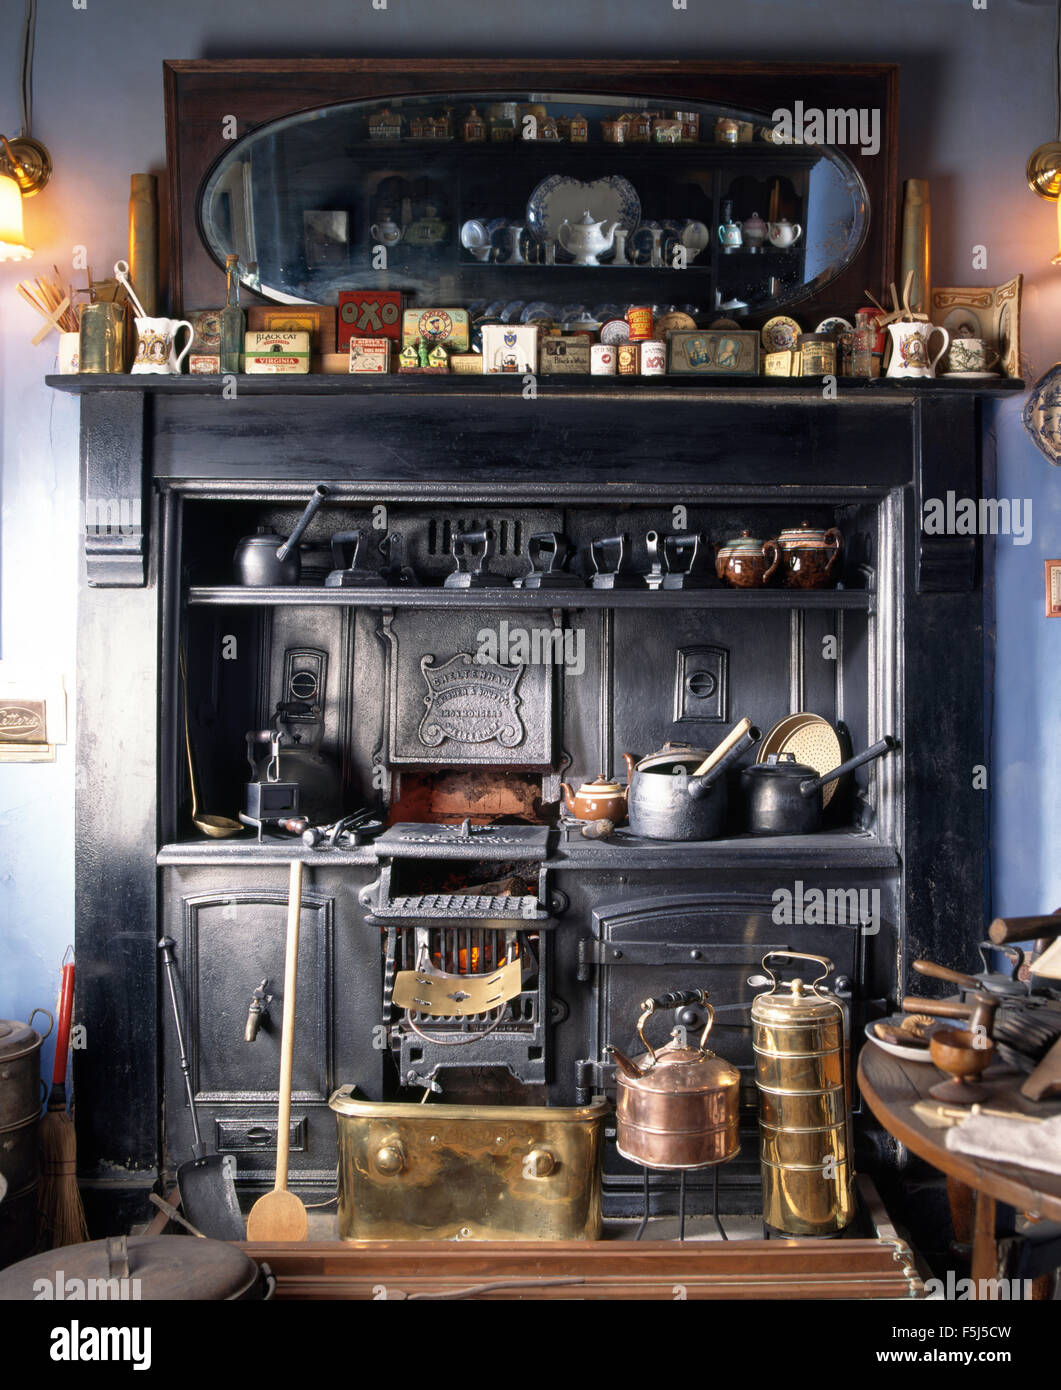 close up of copper pans and antique range oven in a victorian style stock photo 89524537 alamy. Black Bedroom Furniture Sets. Home Design Ideas